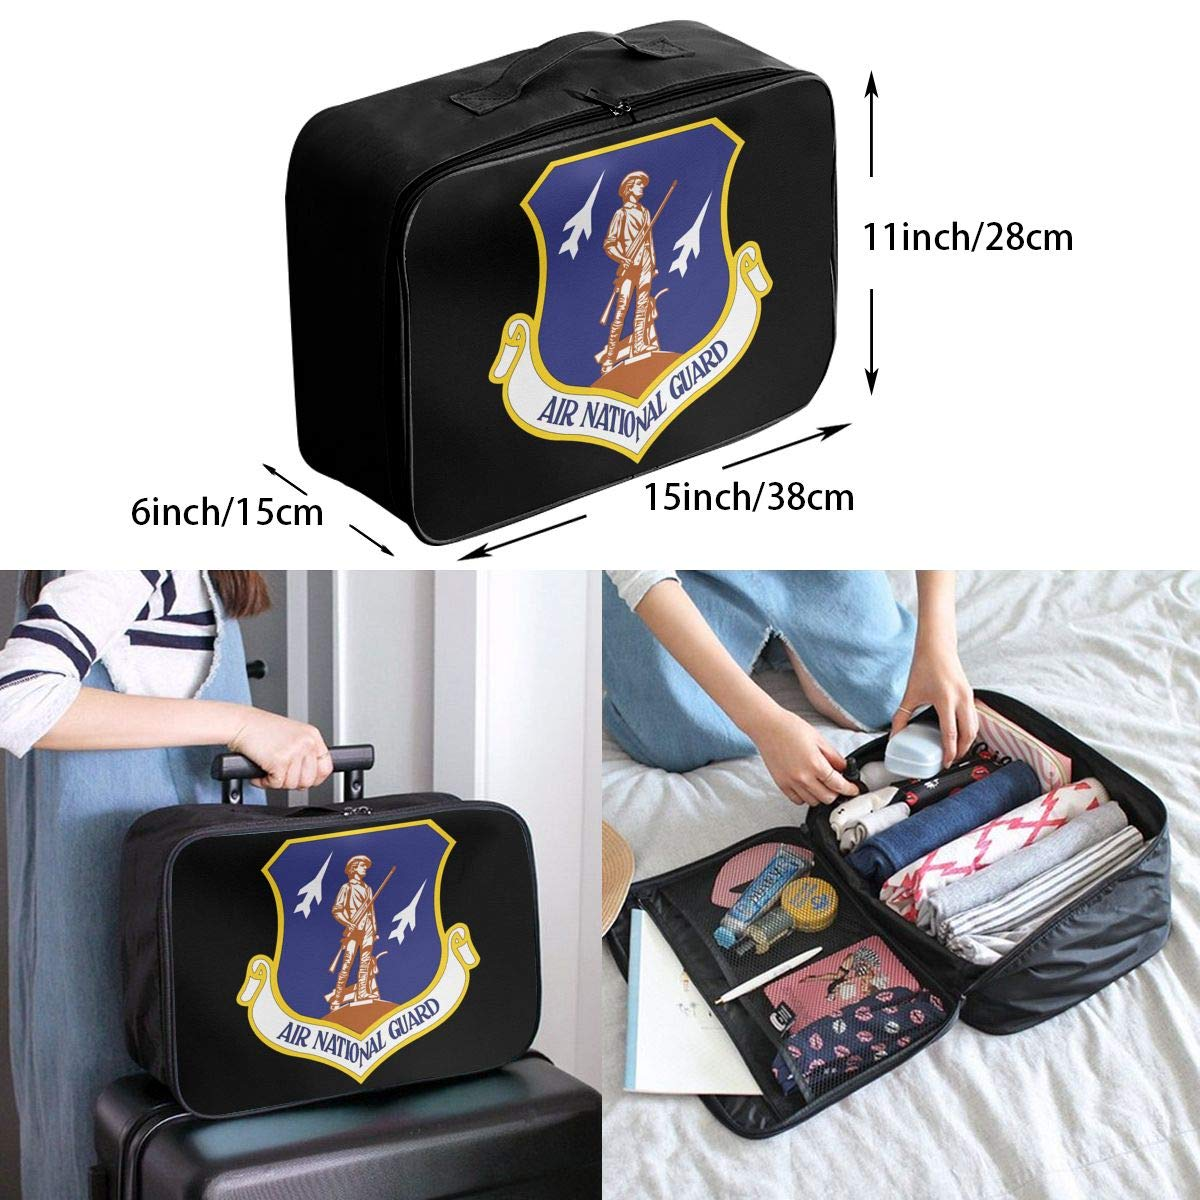 US Air National Guard Travel Bag Men Women 3D Print Pattern Gift Portable Waterproof Oxford Cloth Bags